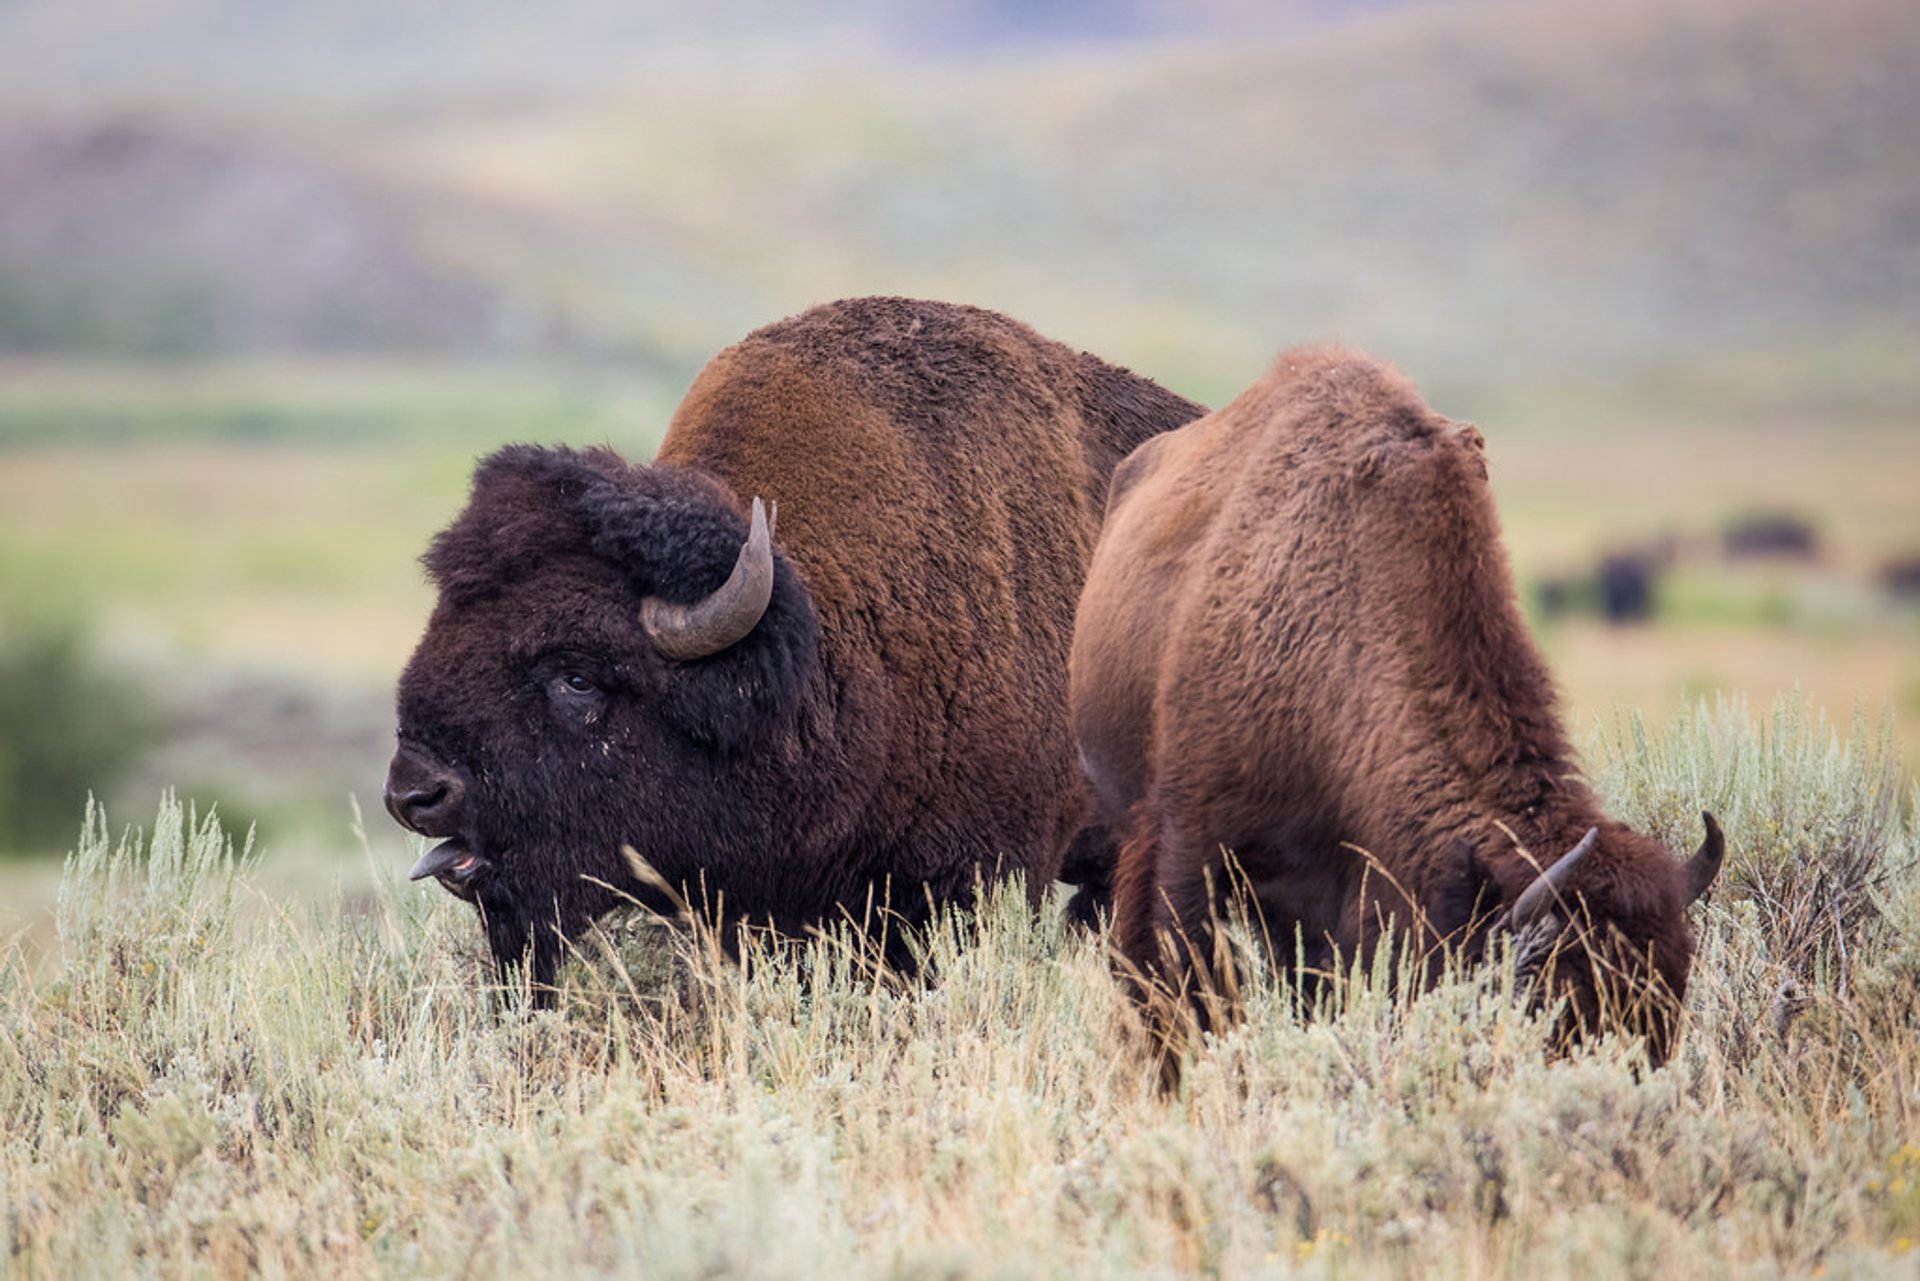 Bison Mating Season in Yellowstone National Park 2020 - Best Time